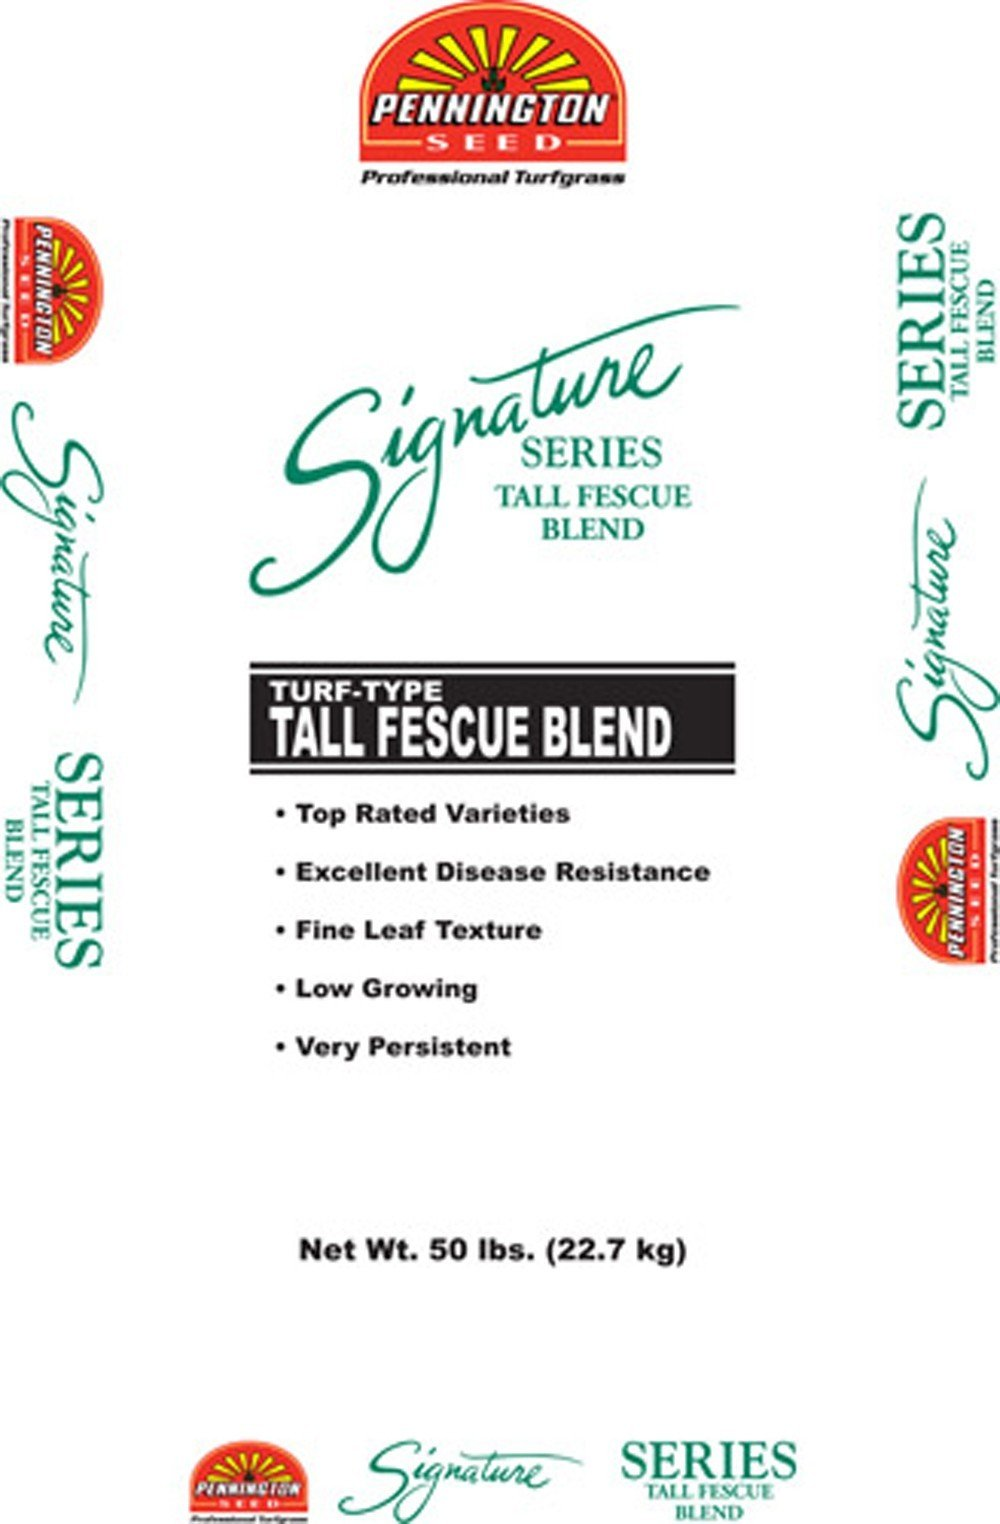 Pennington Signature Series Tall Fescue Blend BT, 50 lb